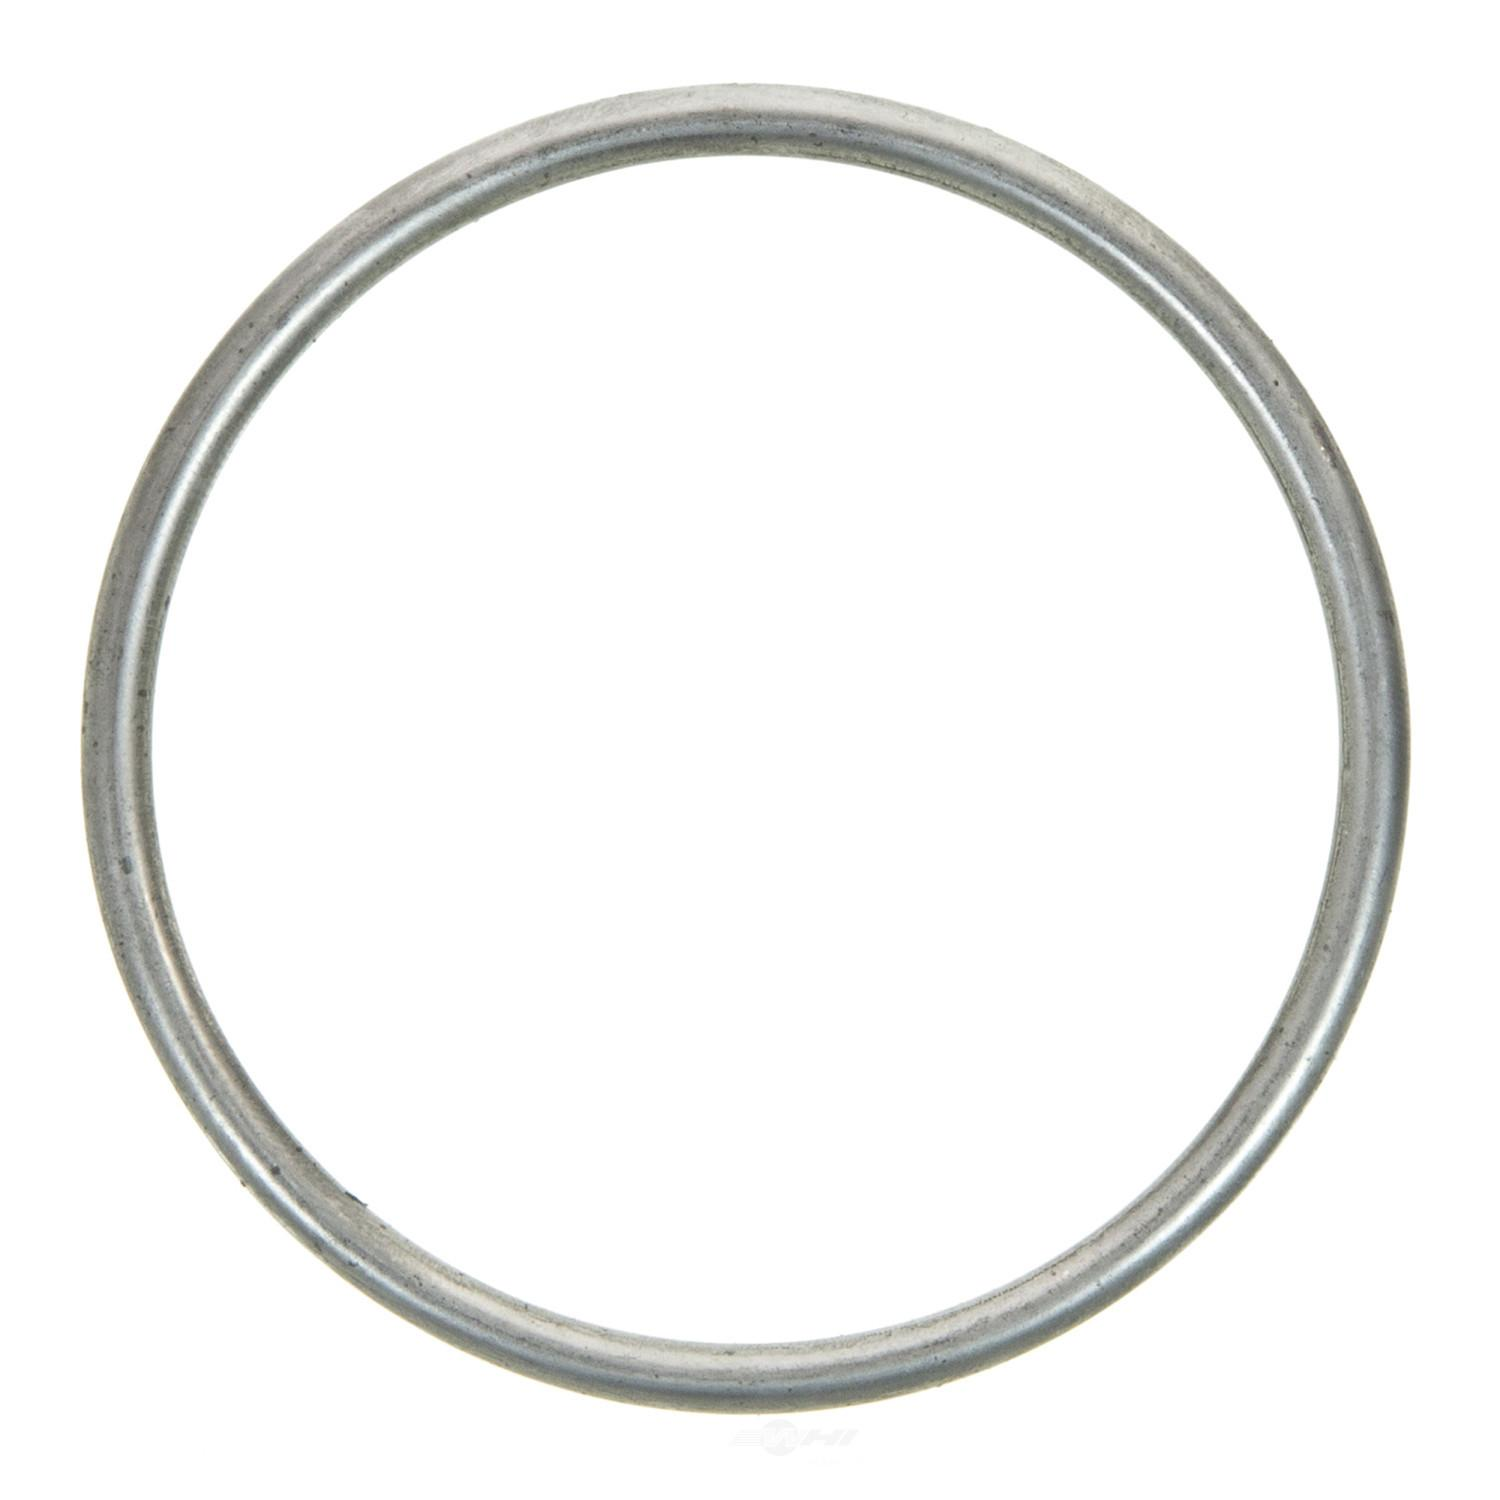 Exhaust Pipe Flange Gasket Fits Nissan Altima